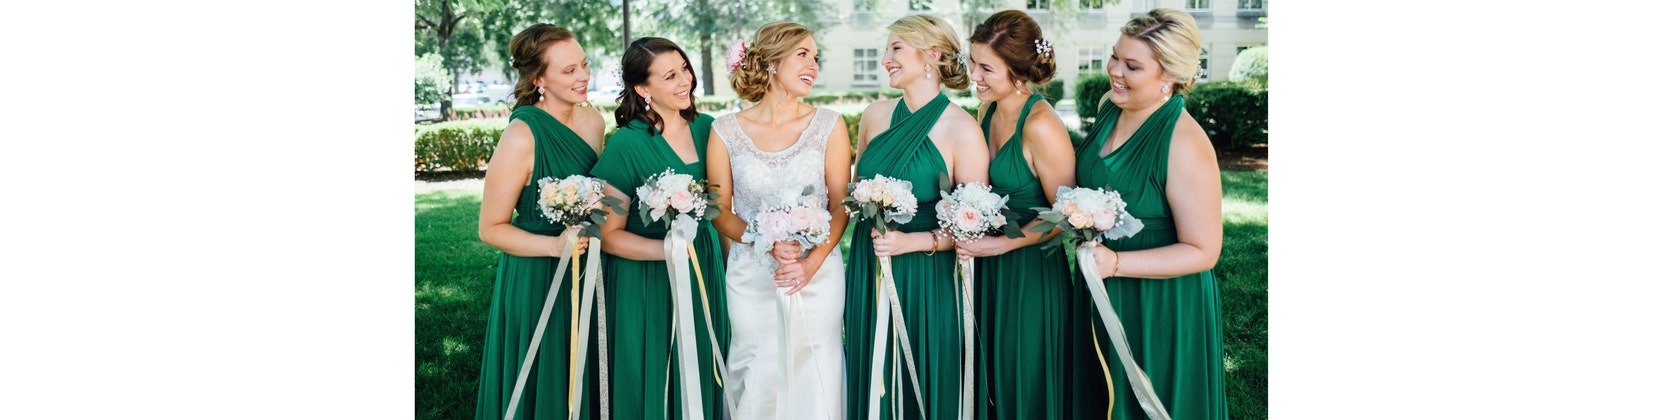 infinity bridesmaid dresses made in new york city by